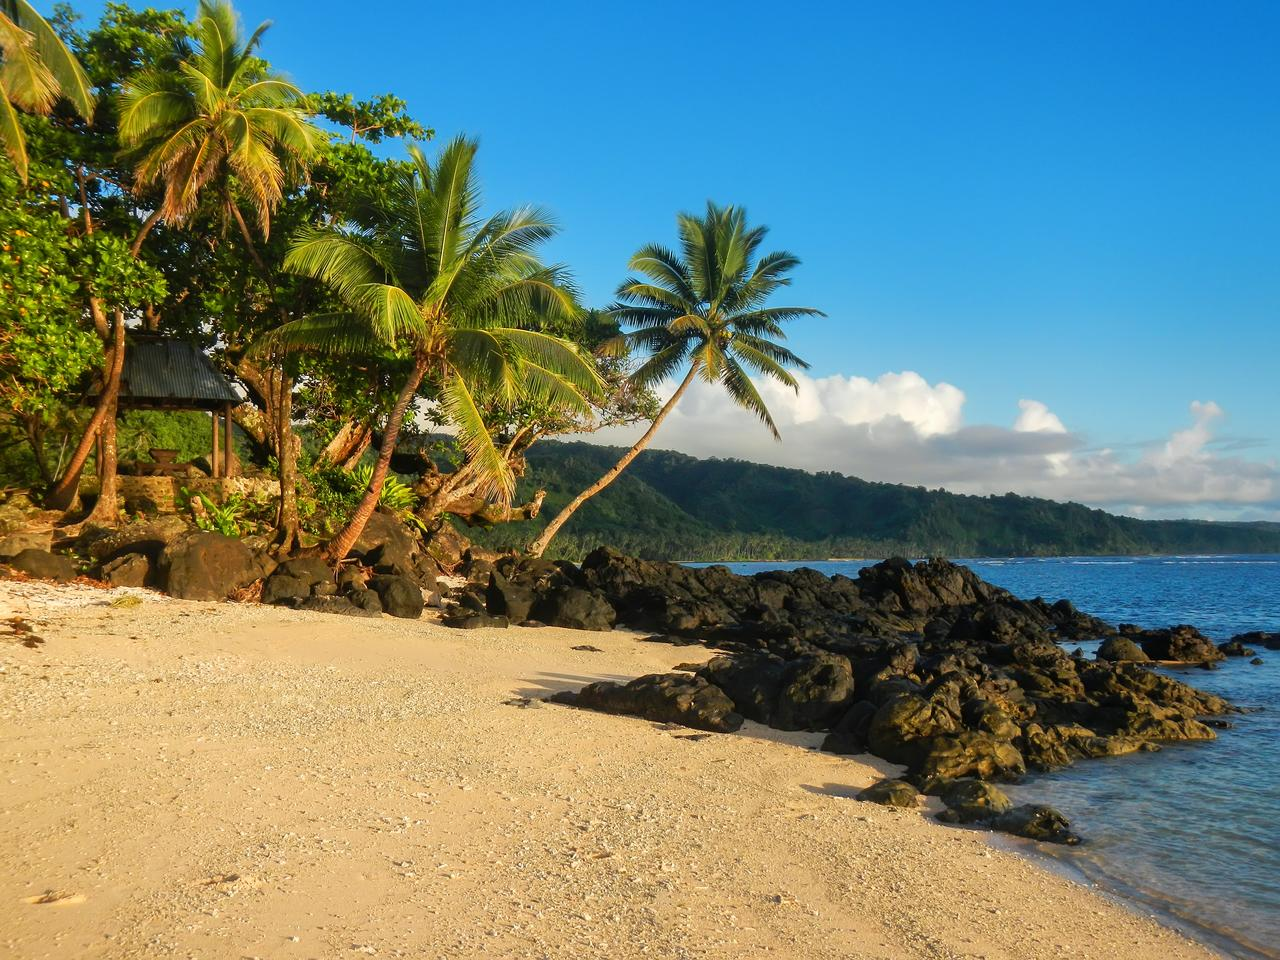 Sandy beach in Lavena village on Taveuni Island, Fiji. Taveuni is the third largest island in Fiji.